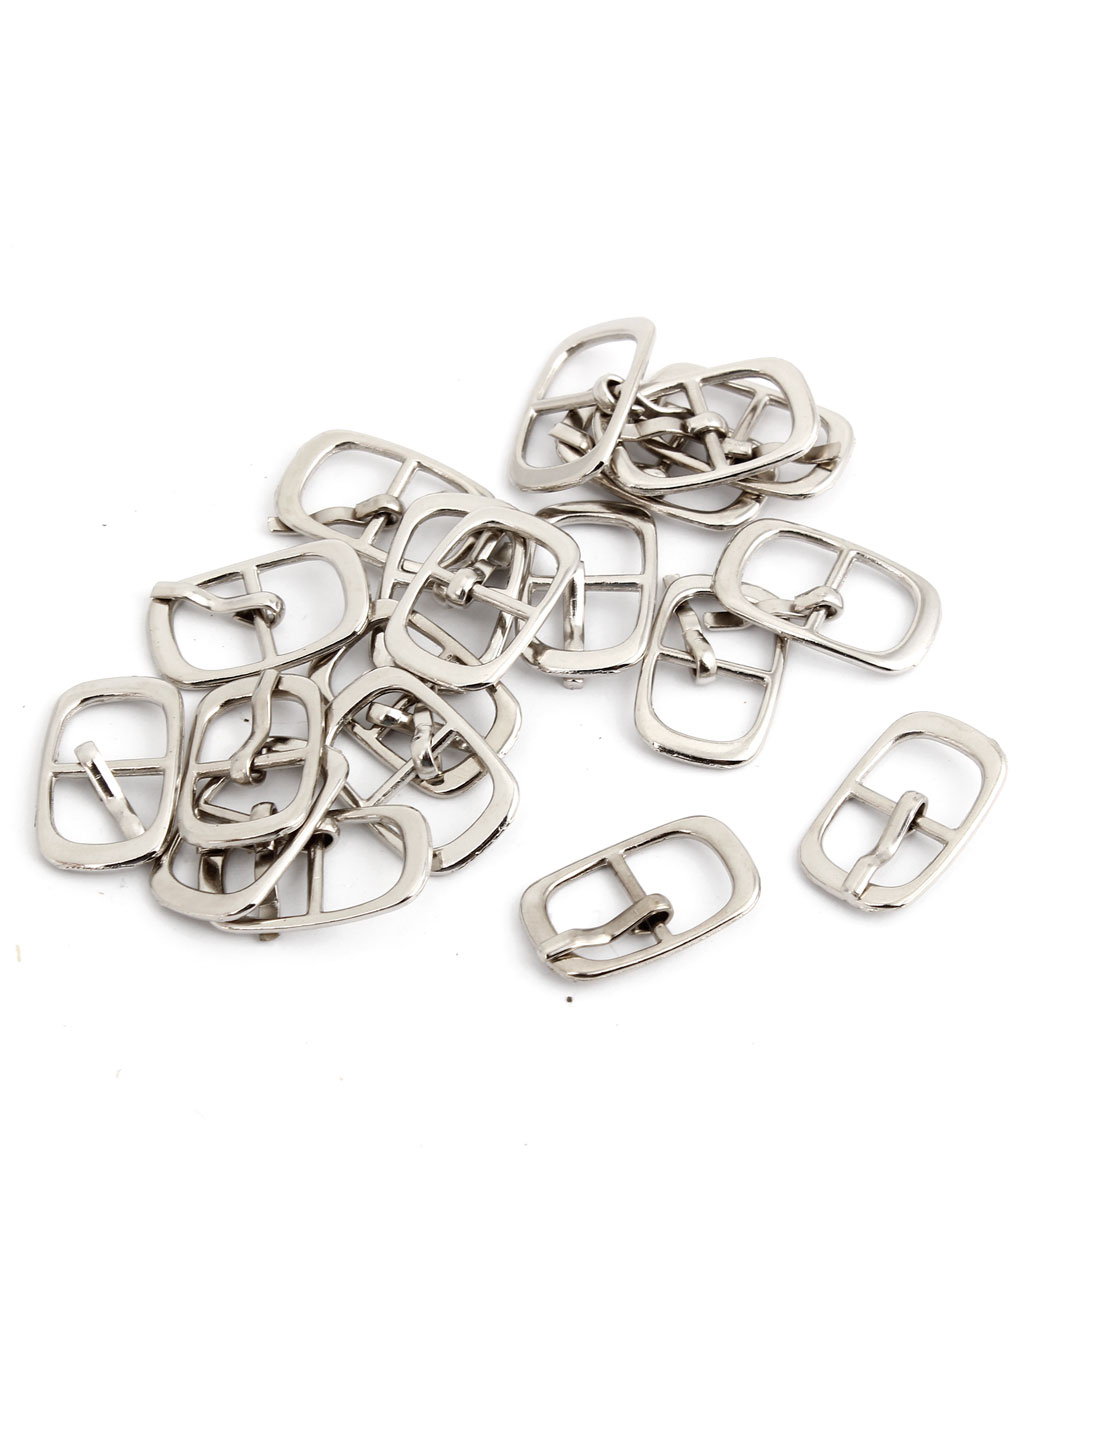 19 Pcs Metallic Single Prong Pin Buckles for 9mm Width Shoes Belt